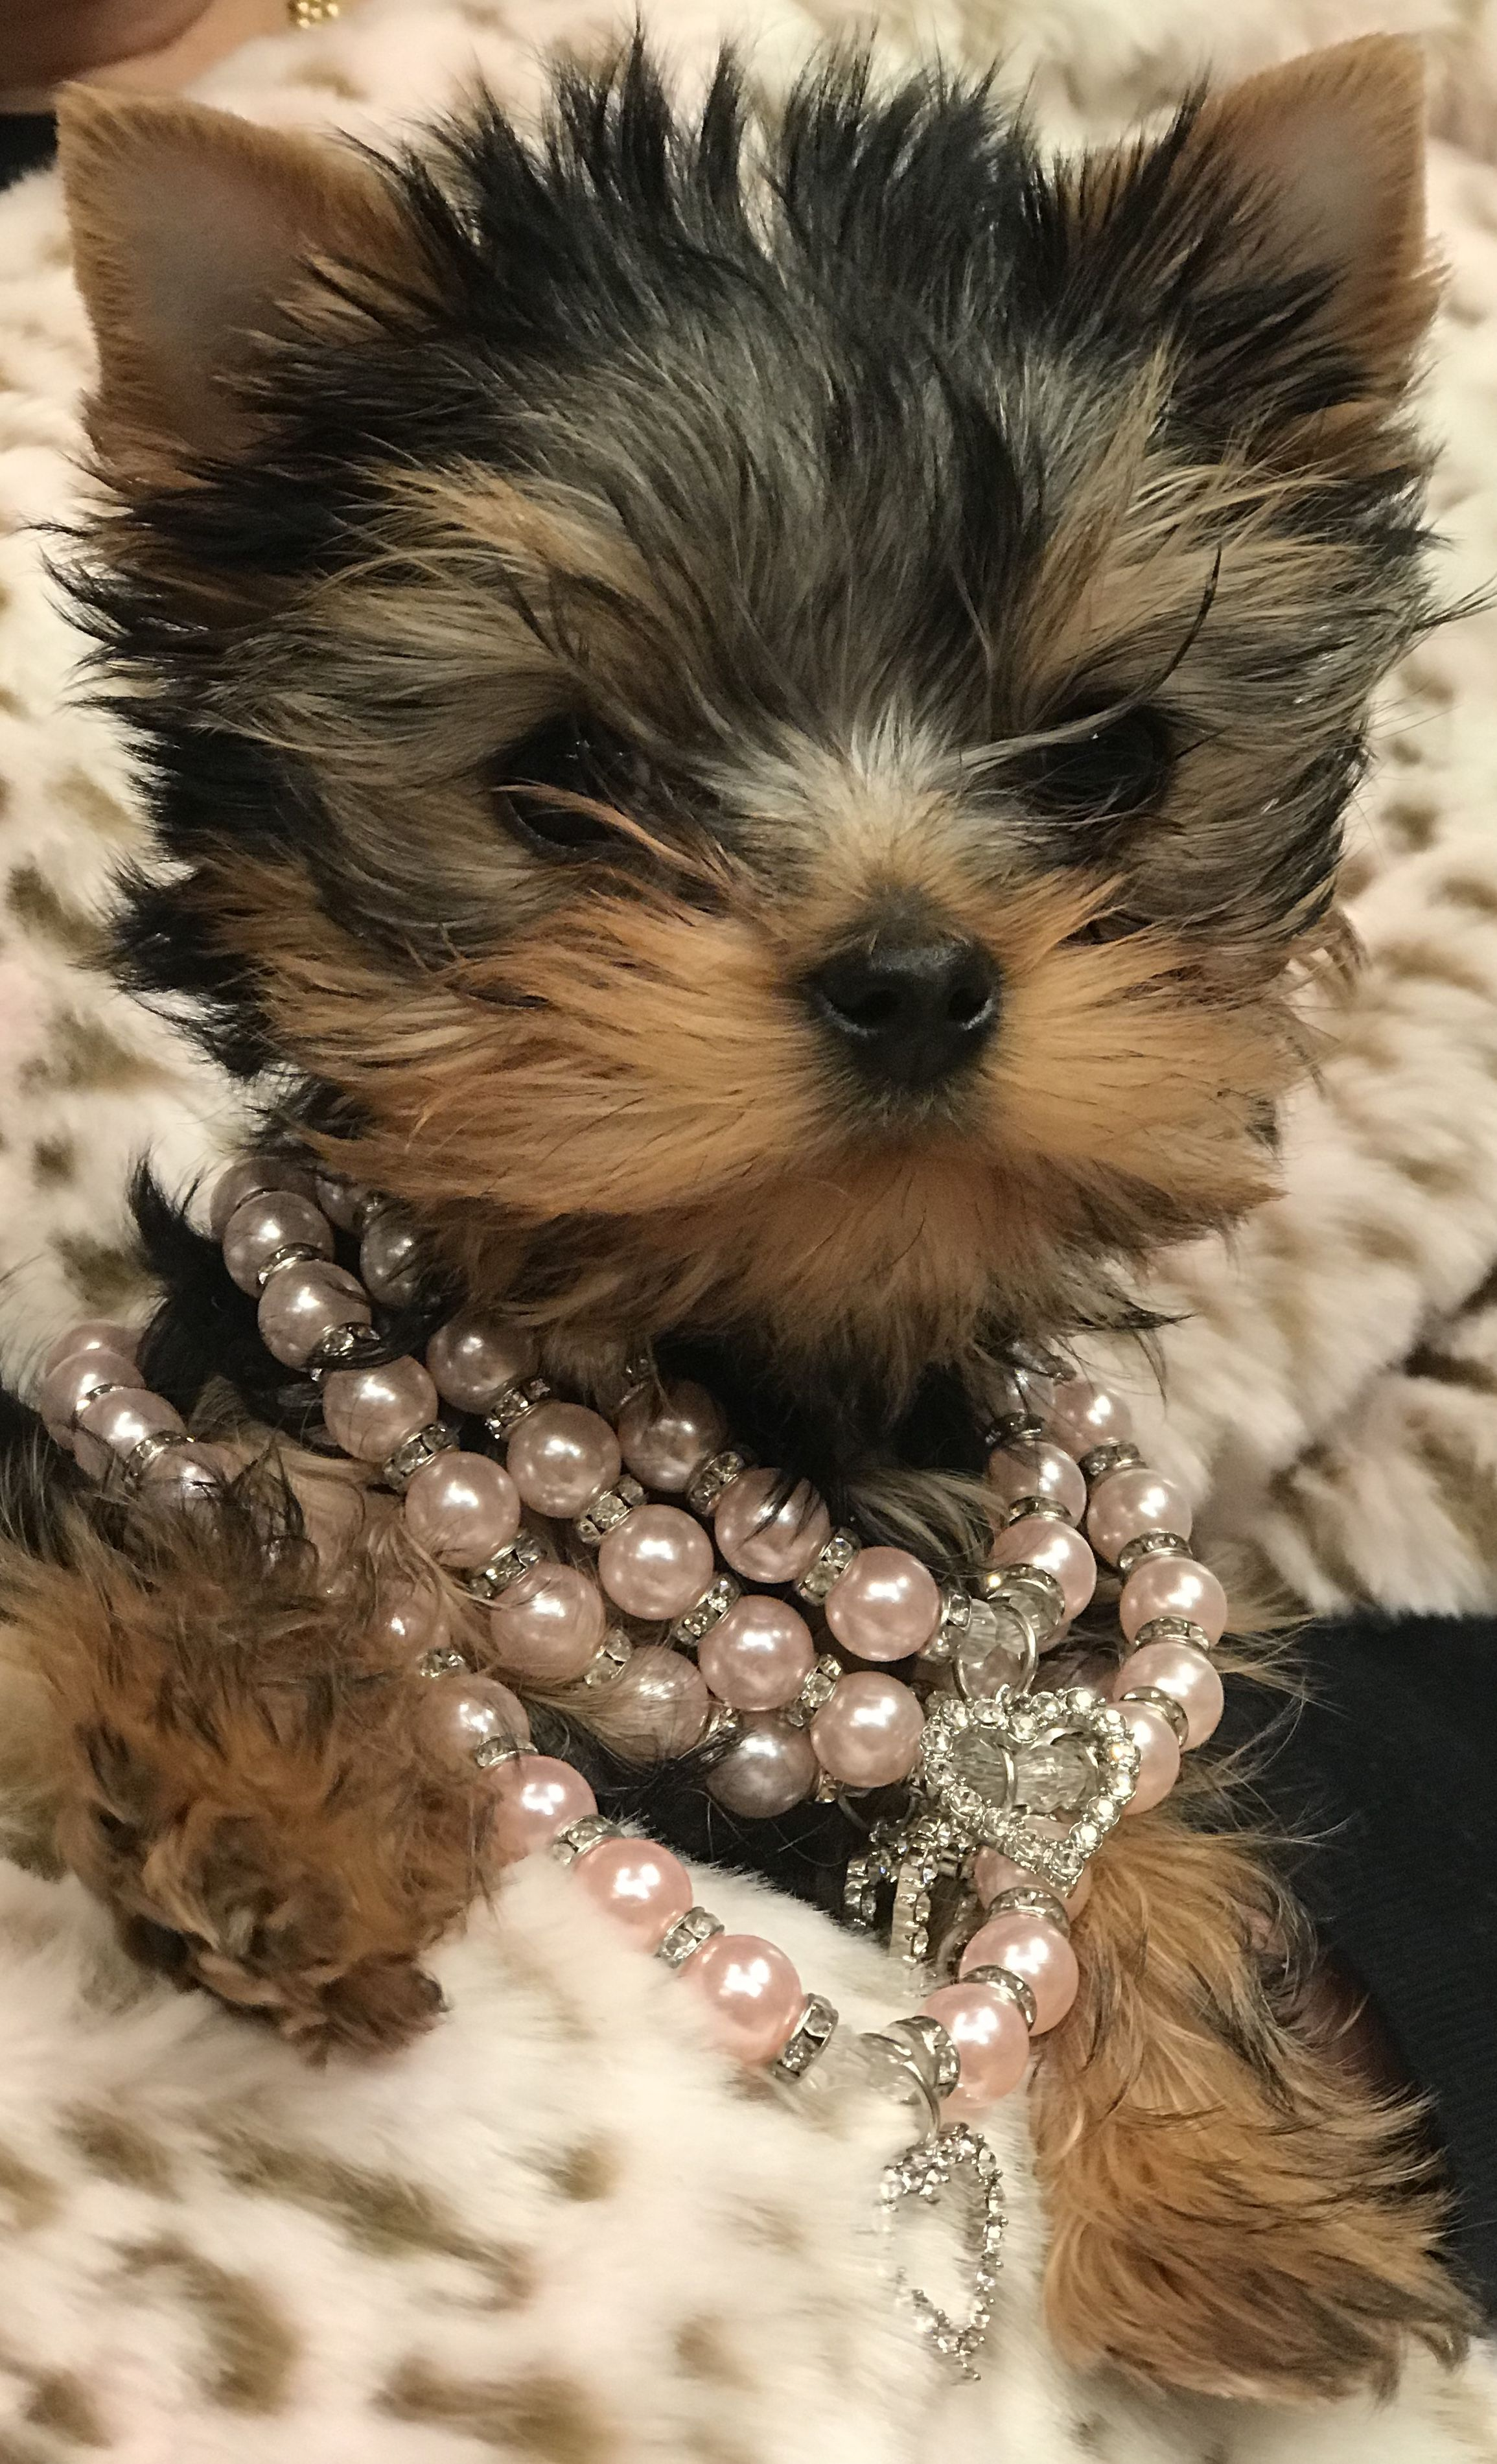 Elegance Personality Conformation Are Attributes Of A Radford Yorkshire Terrier 540 986 1604 Yorkshire Terrier Puppies Yorkshire Terrier Dog Yorkie Dogs